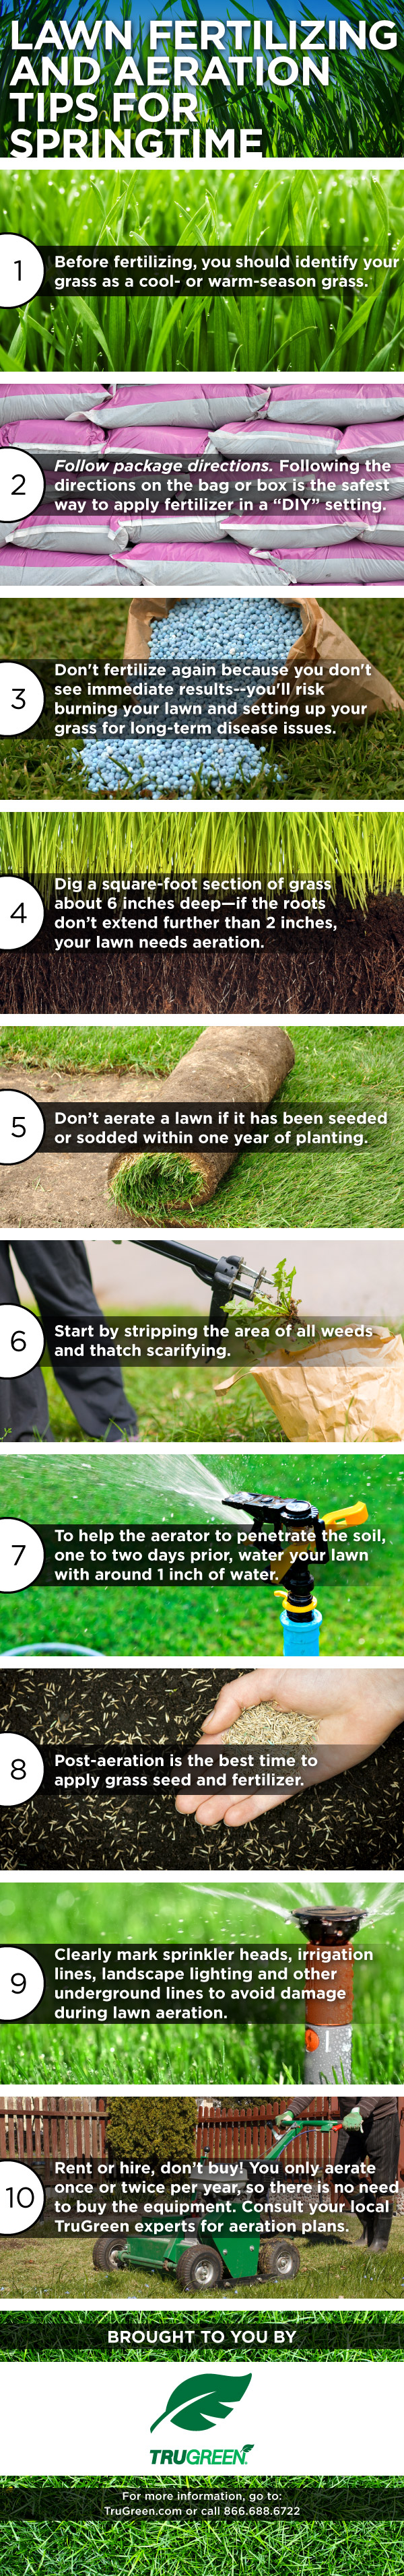 Lawn Aeration And Fertilizing Tips For Spring Gail Regan Truax